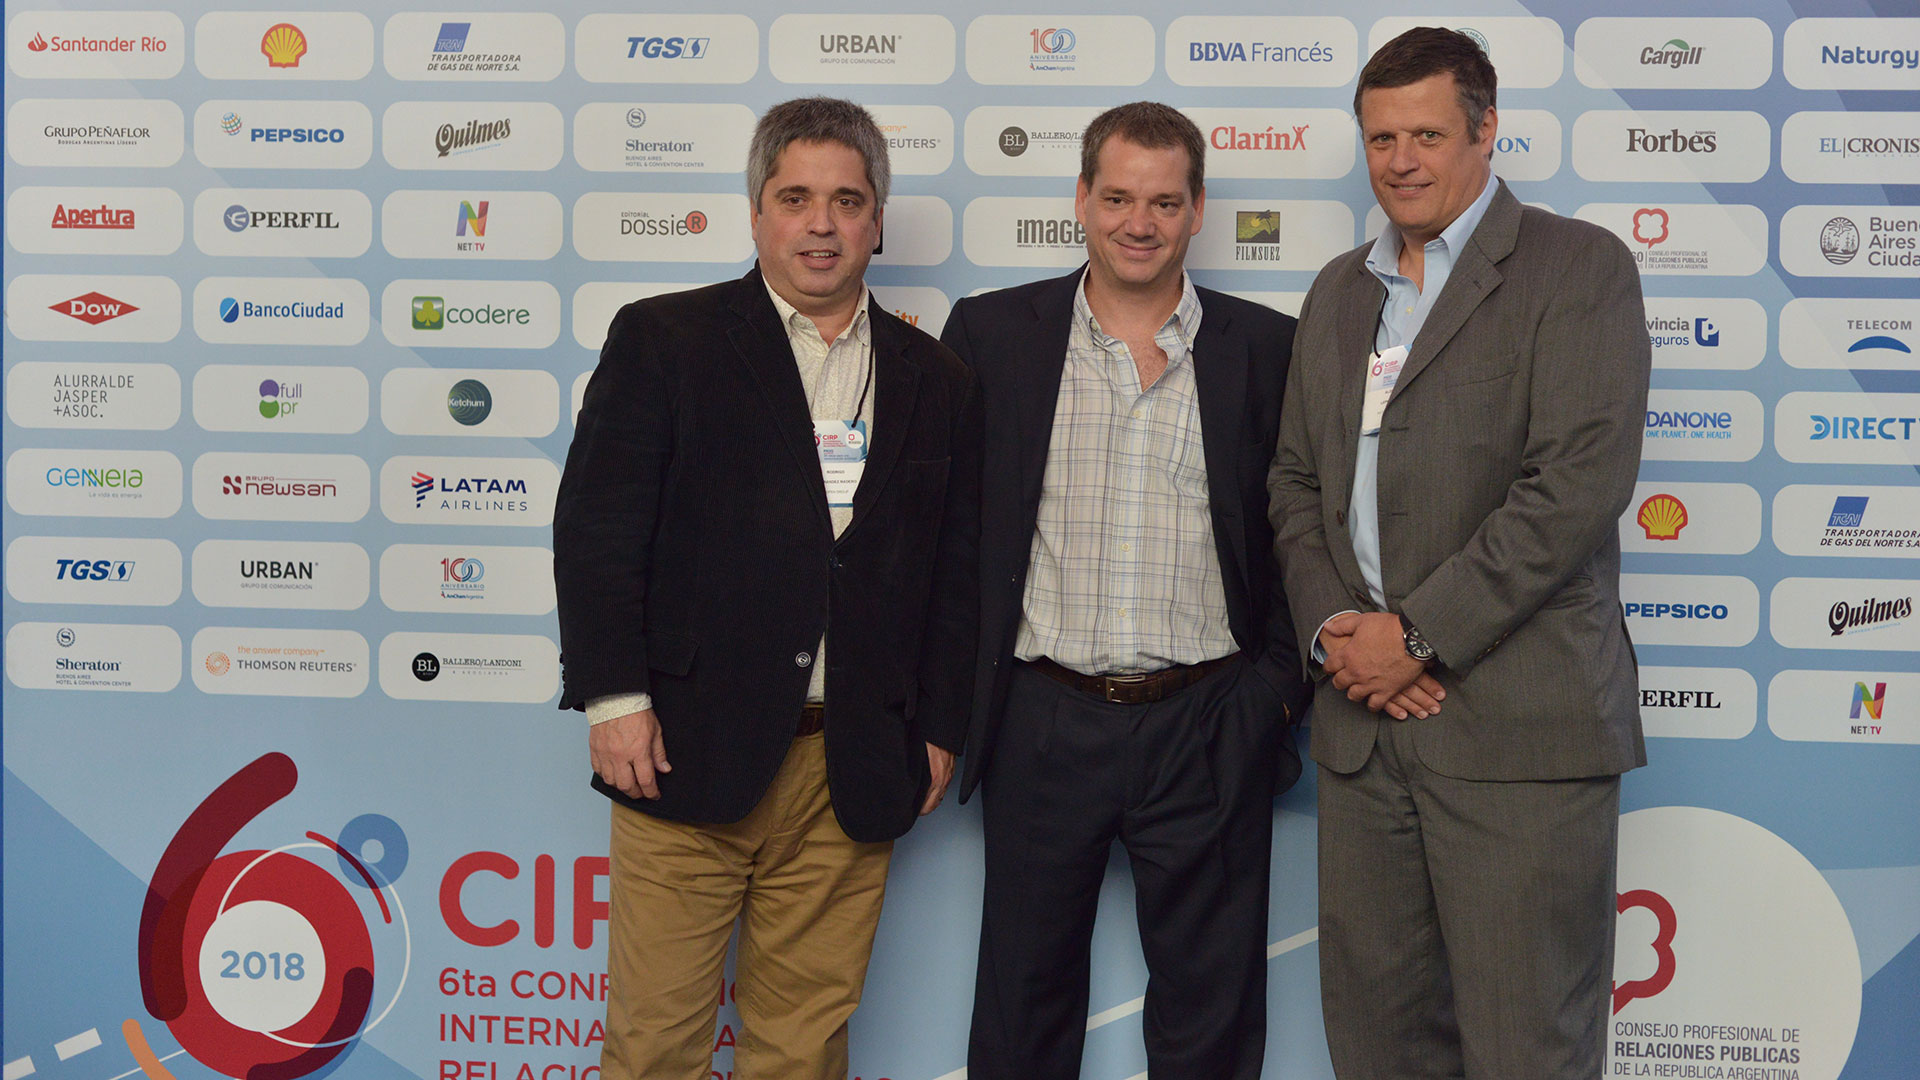 Rodrigo Fernández Madero (Director de Open Group), Patricio Borda (Director de Full PR) y Aldo Leporatti (Director General de Porter Novelli)